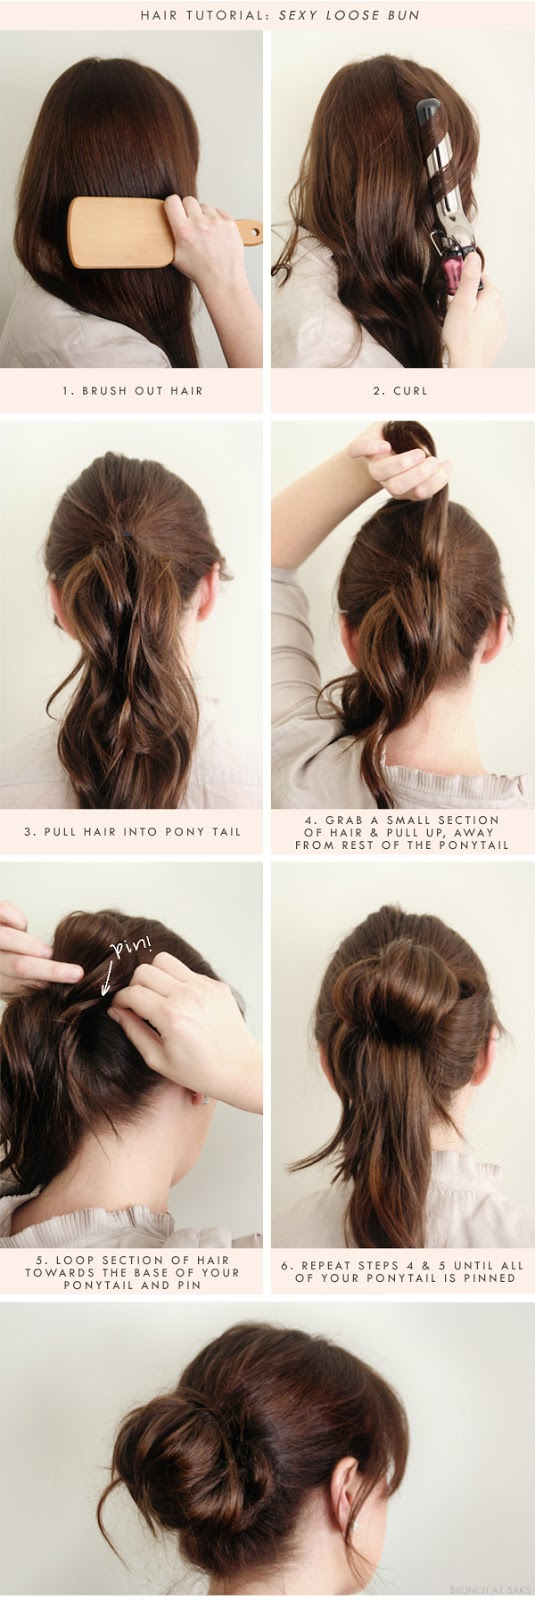 Prime Top 25 Messy Hair Bun Tutorials Perfect For Those Lazy Mornings Short Hairstyles For Black Women Fulllsitofus